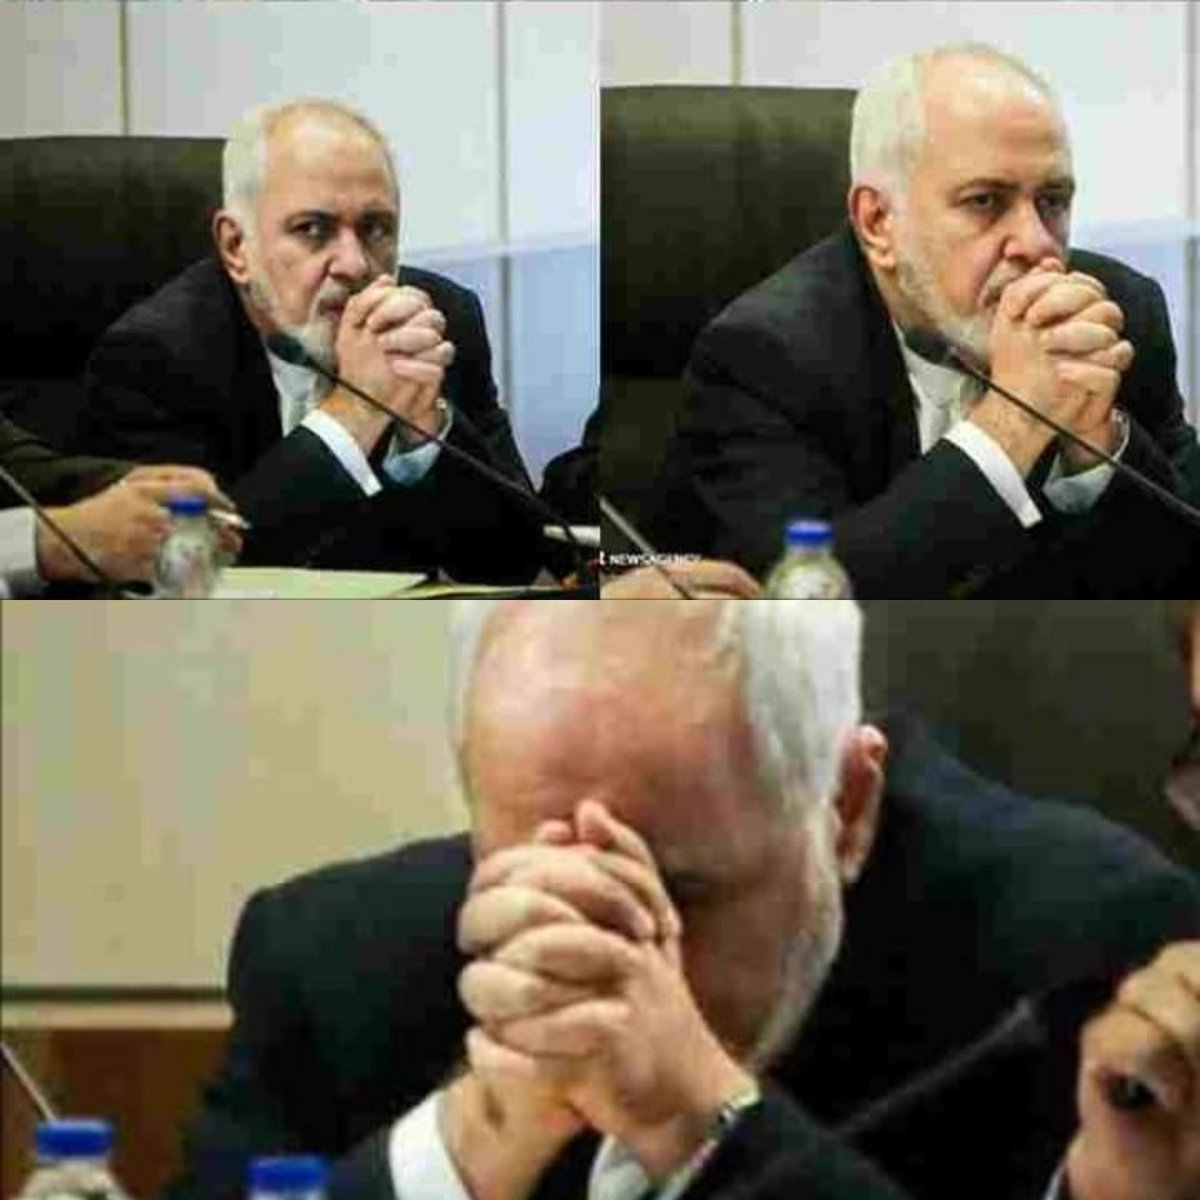 Hey @JZarif, I am so happy  you're not smiling anymore! You can't fool the world anymore!   #WeSupportPolandSummit